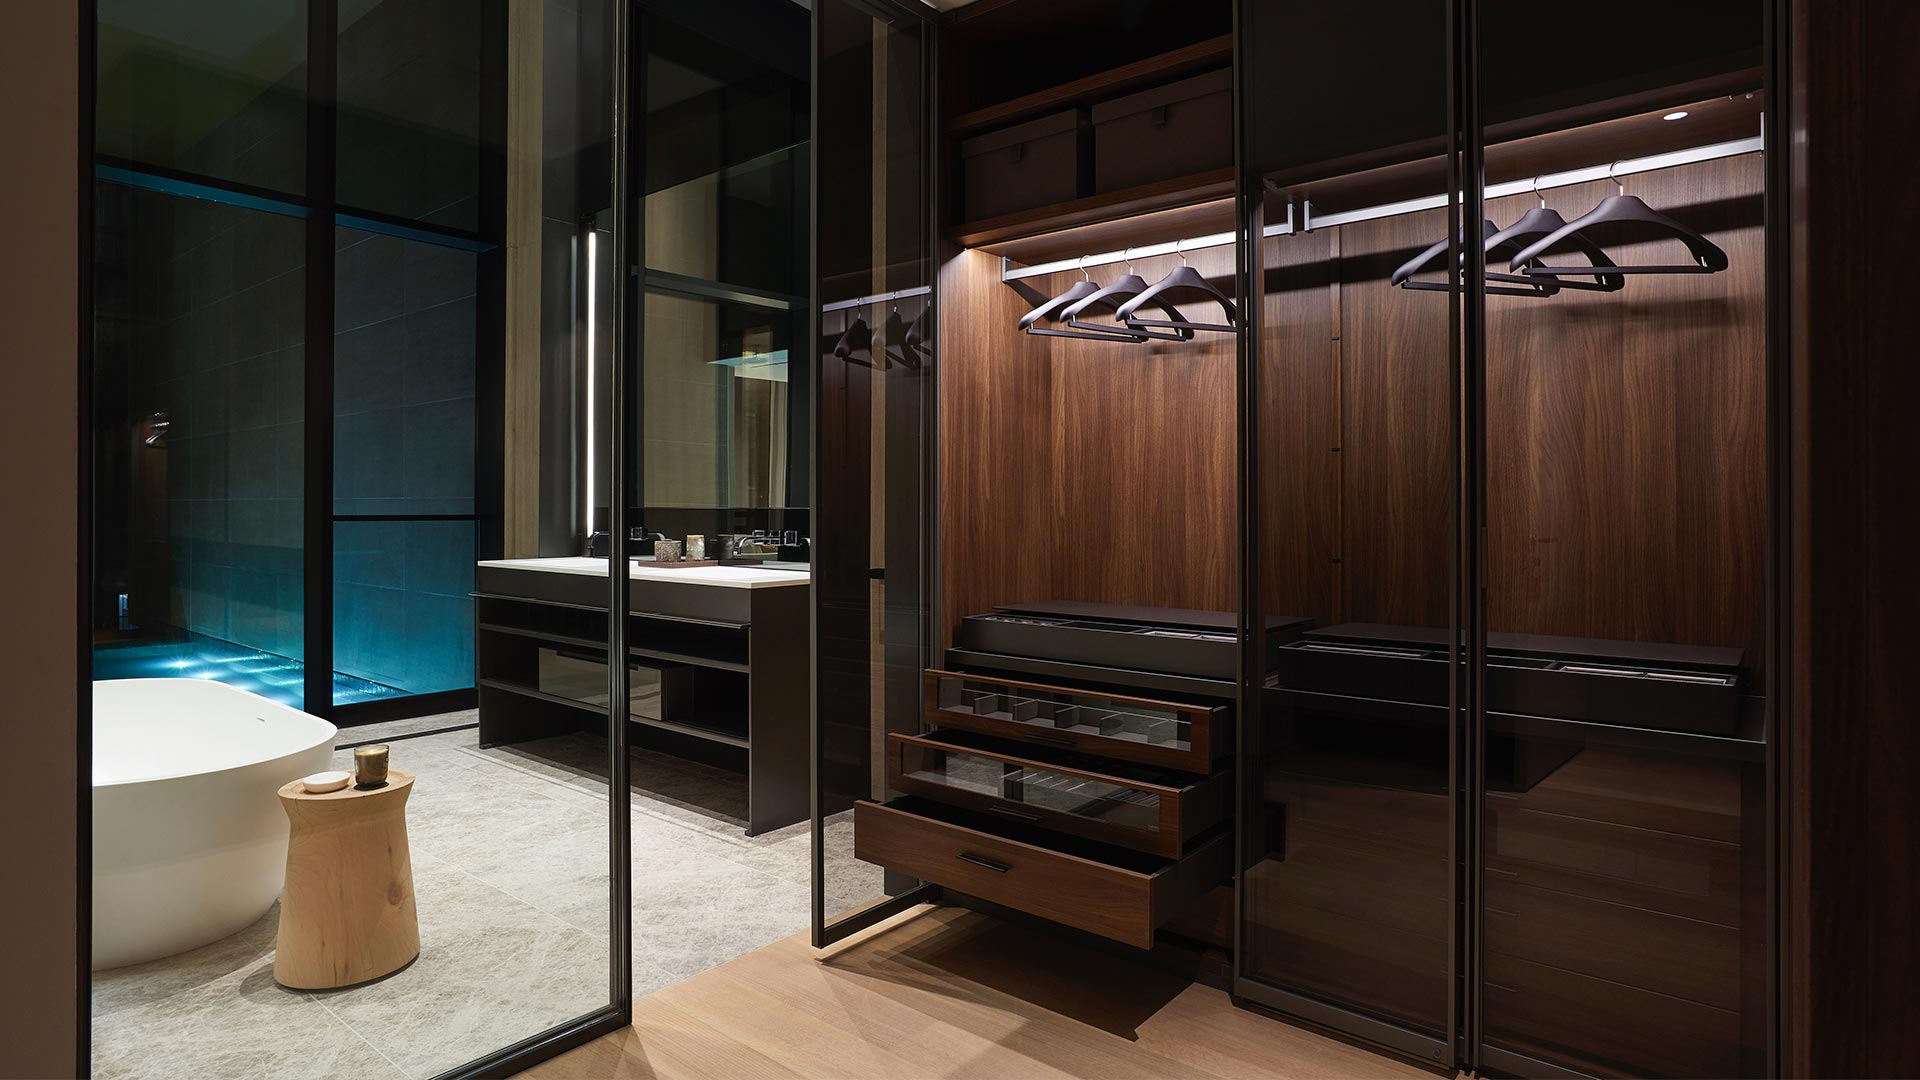 SCDA custom-designed walk-in closets